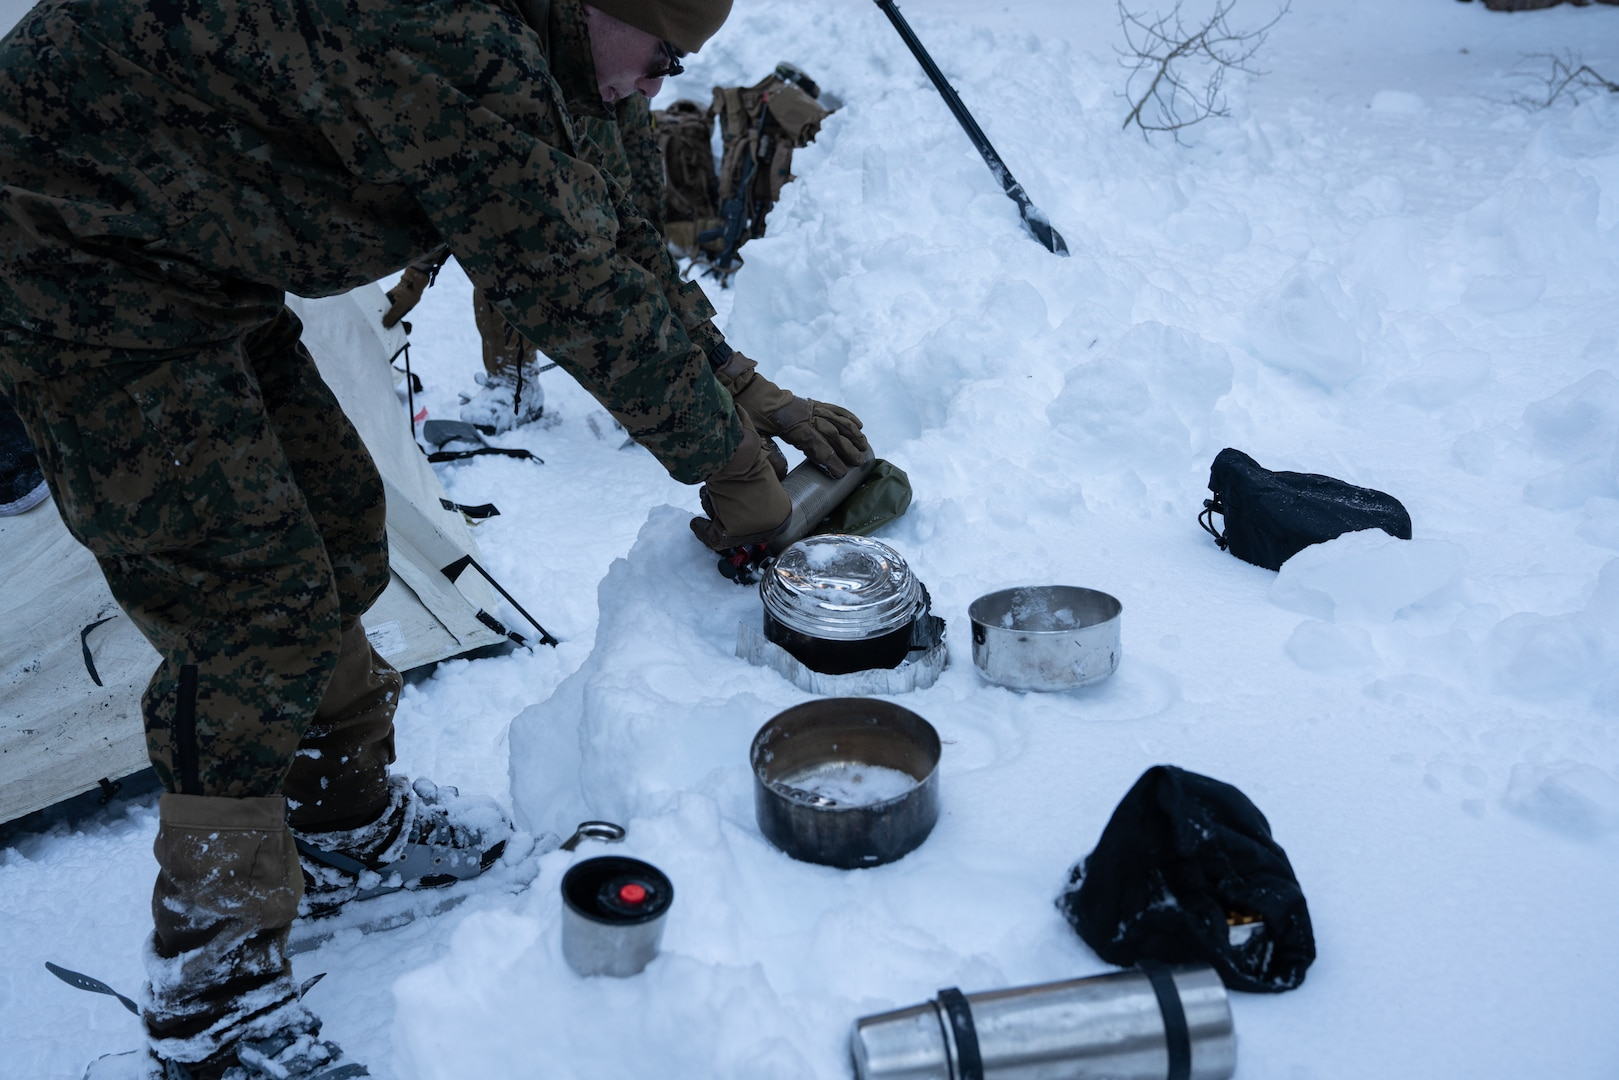 A Marine with 2nd Battalion, 7th Marines turns on a white gas stove while melting snow at the Mountain Warfare Training Center, on January 30, 2021. Marines participated in the Mountain Training Exercise, which prepares units for offensive operations in mountainous environments. (U.S. Marine Corps photo by Lance Cpl. Andrew R. Bray)